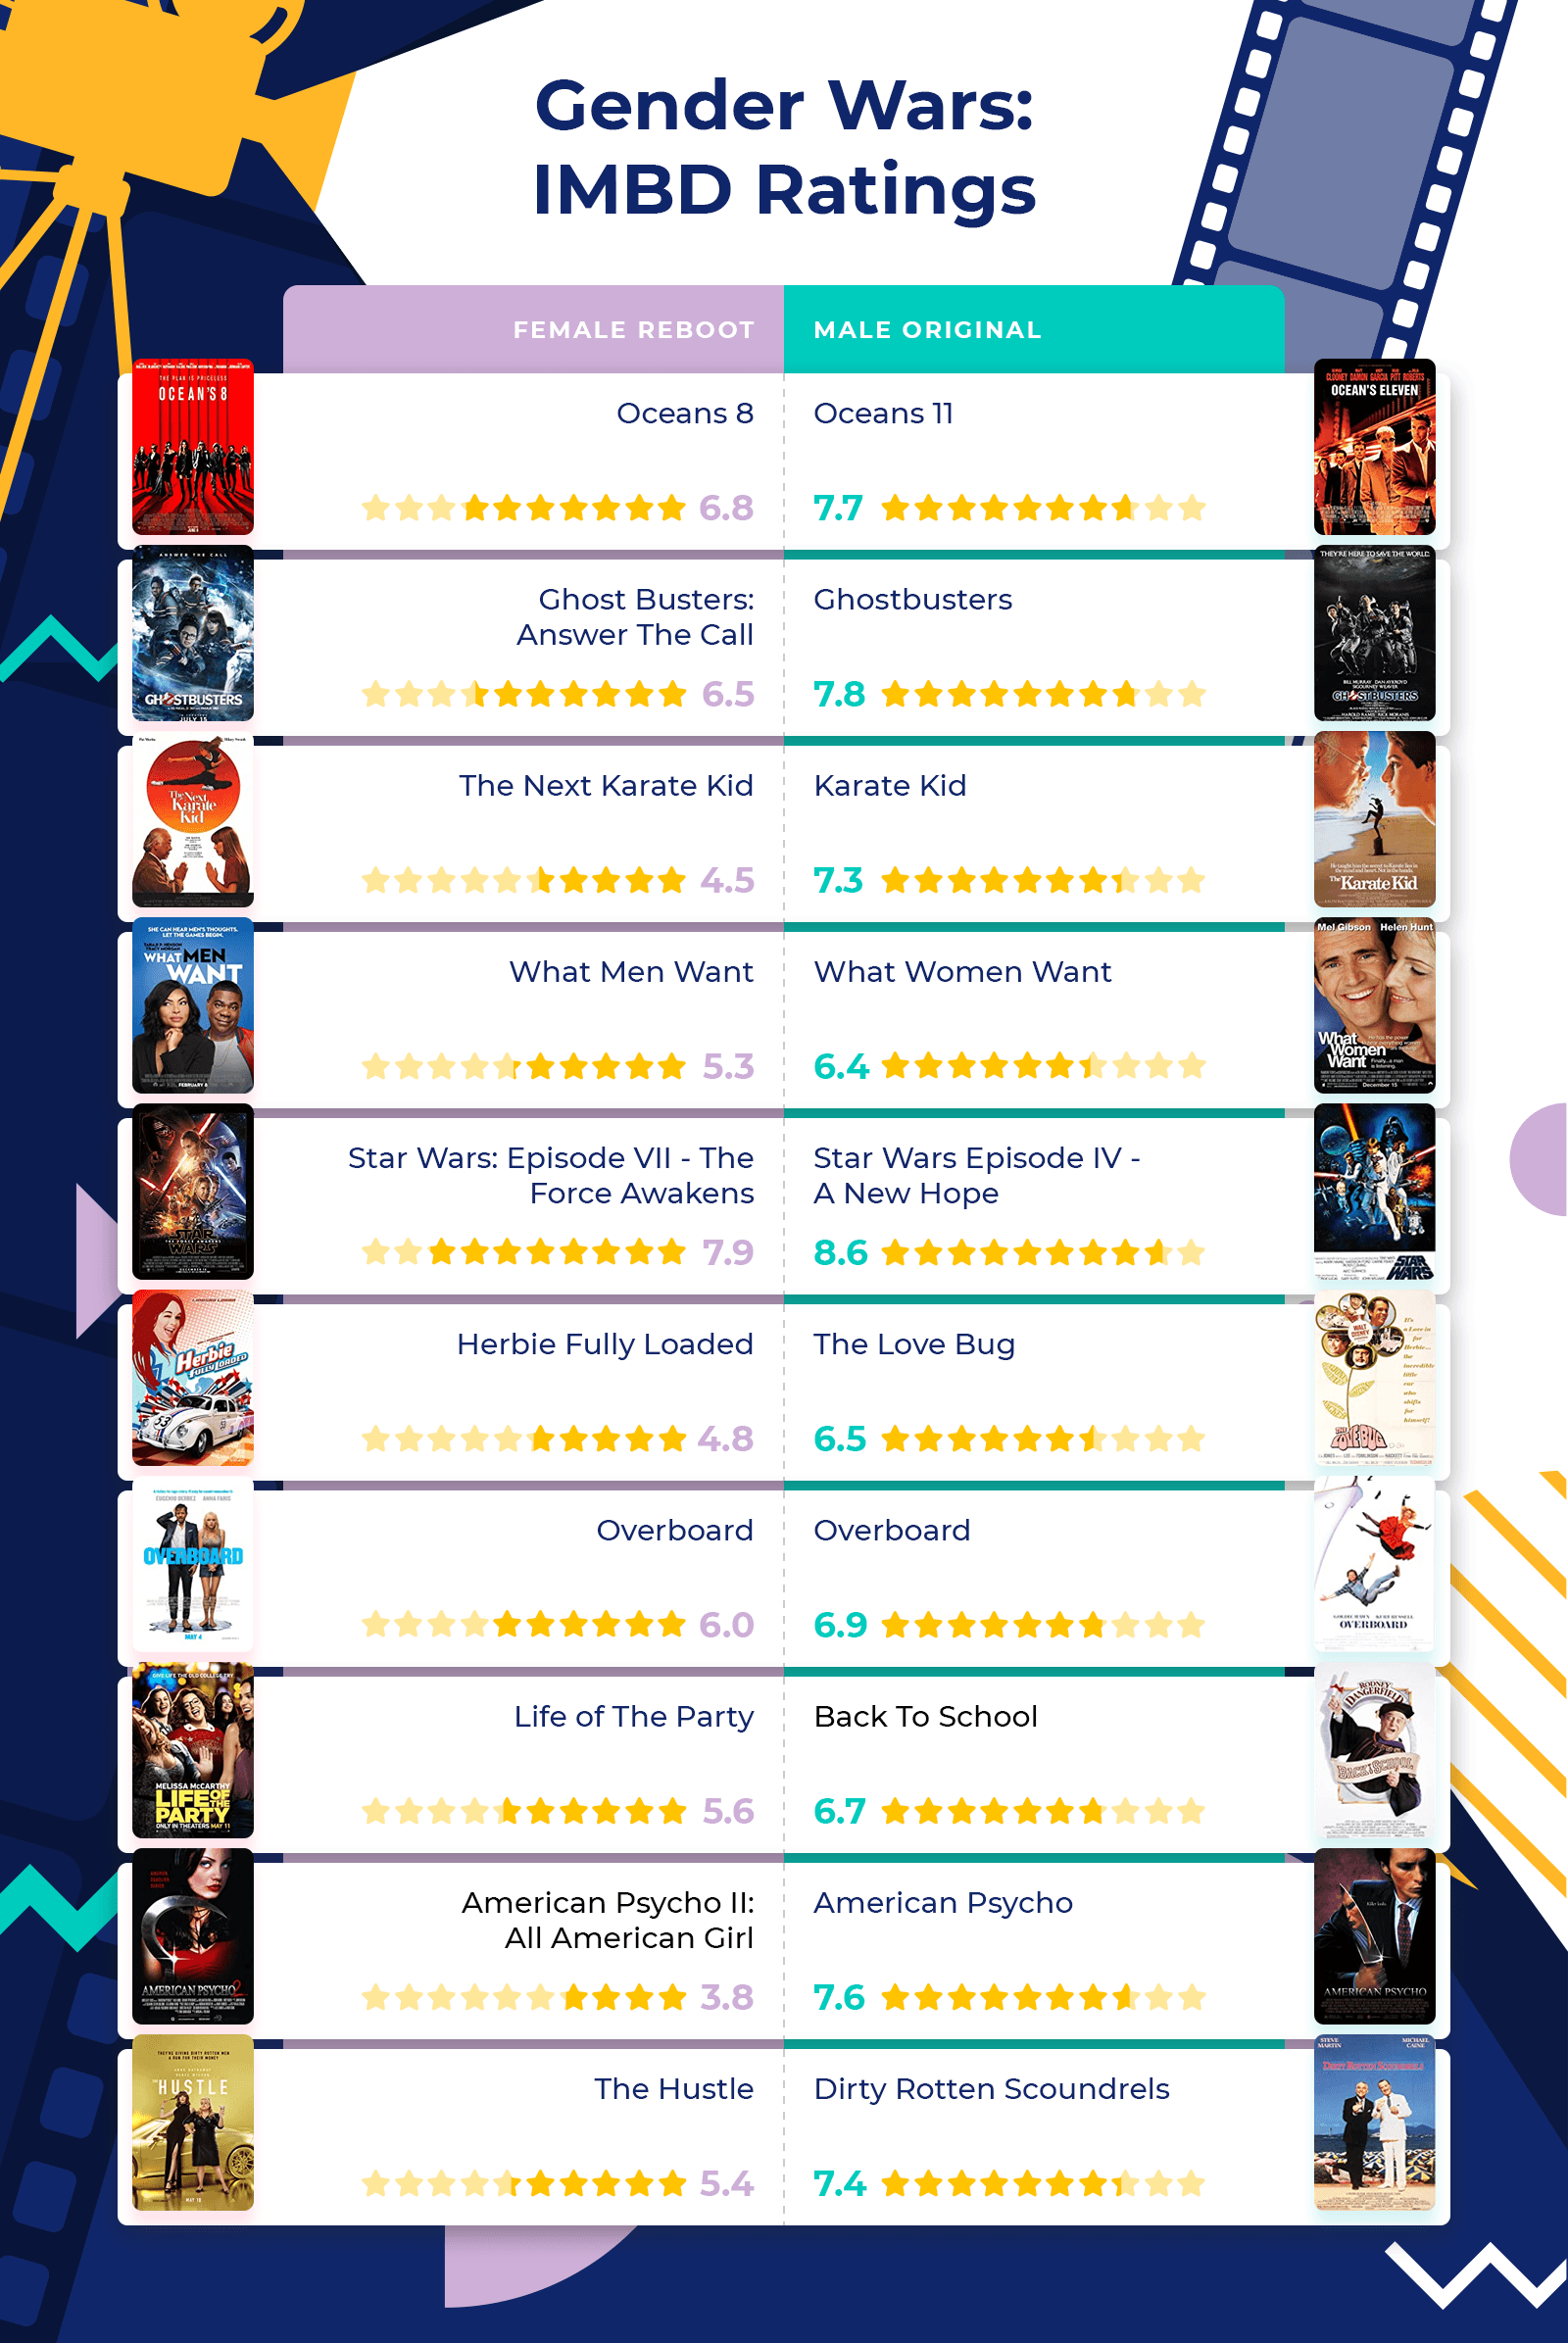 Gender Wars: IMBD Ratings infographic